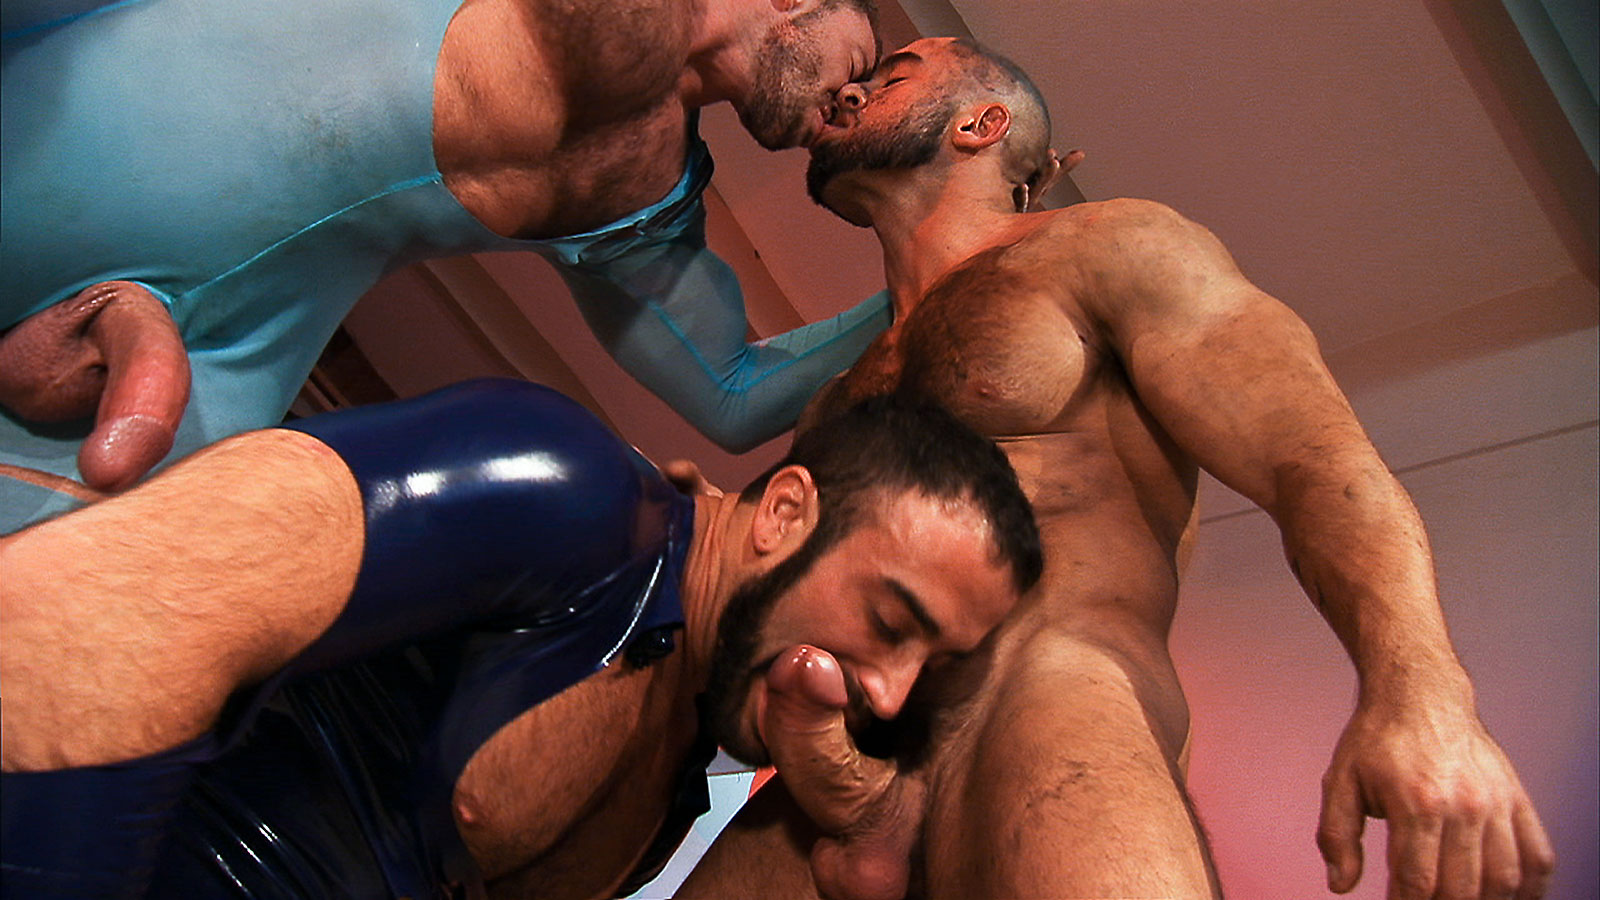 gay canne knotting anal stretching knot